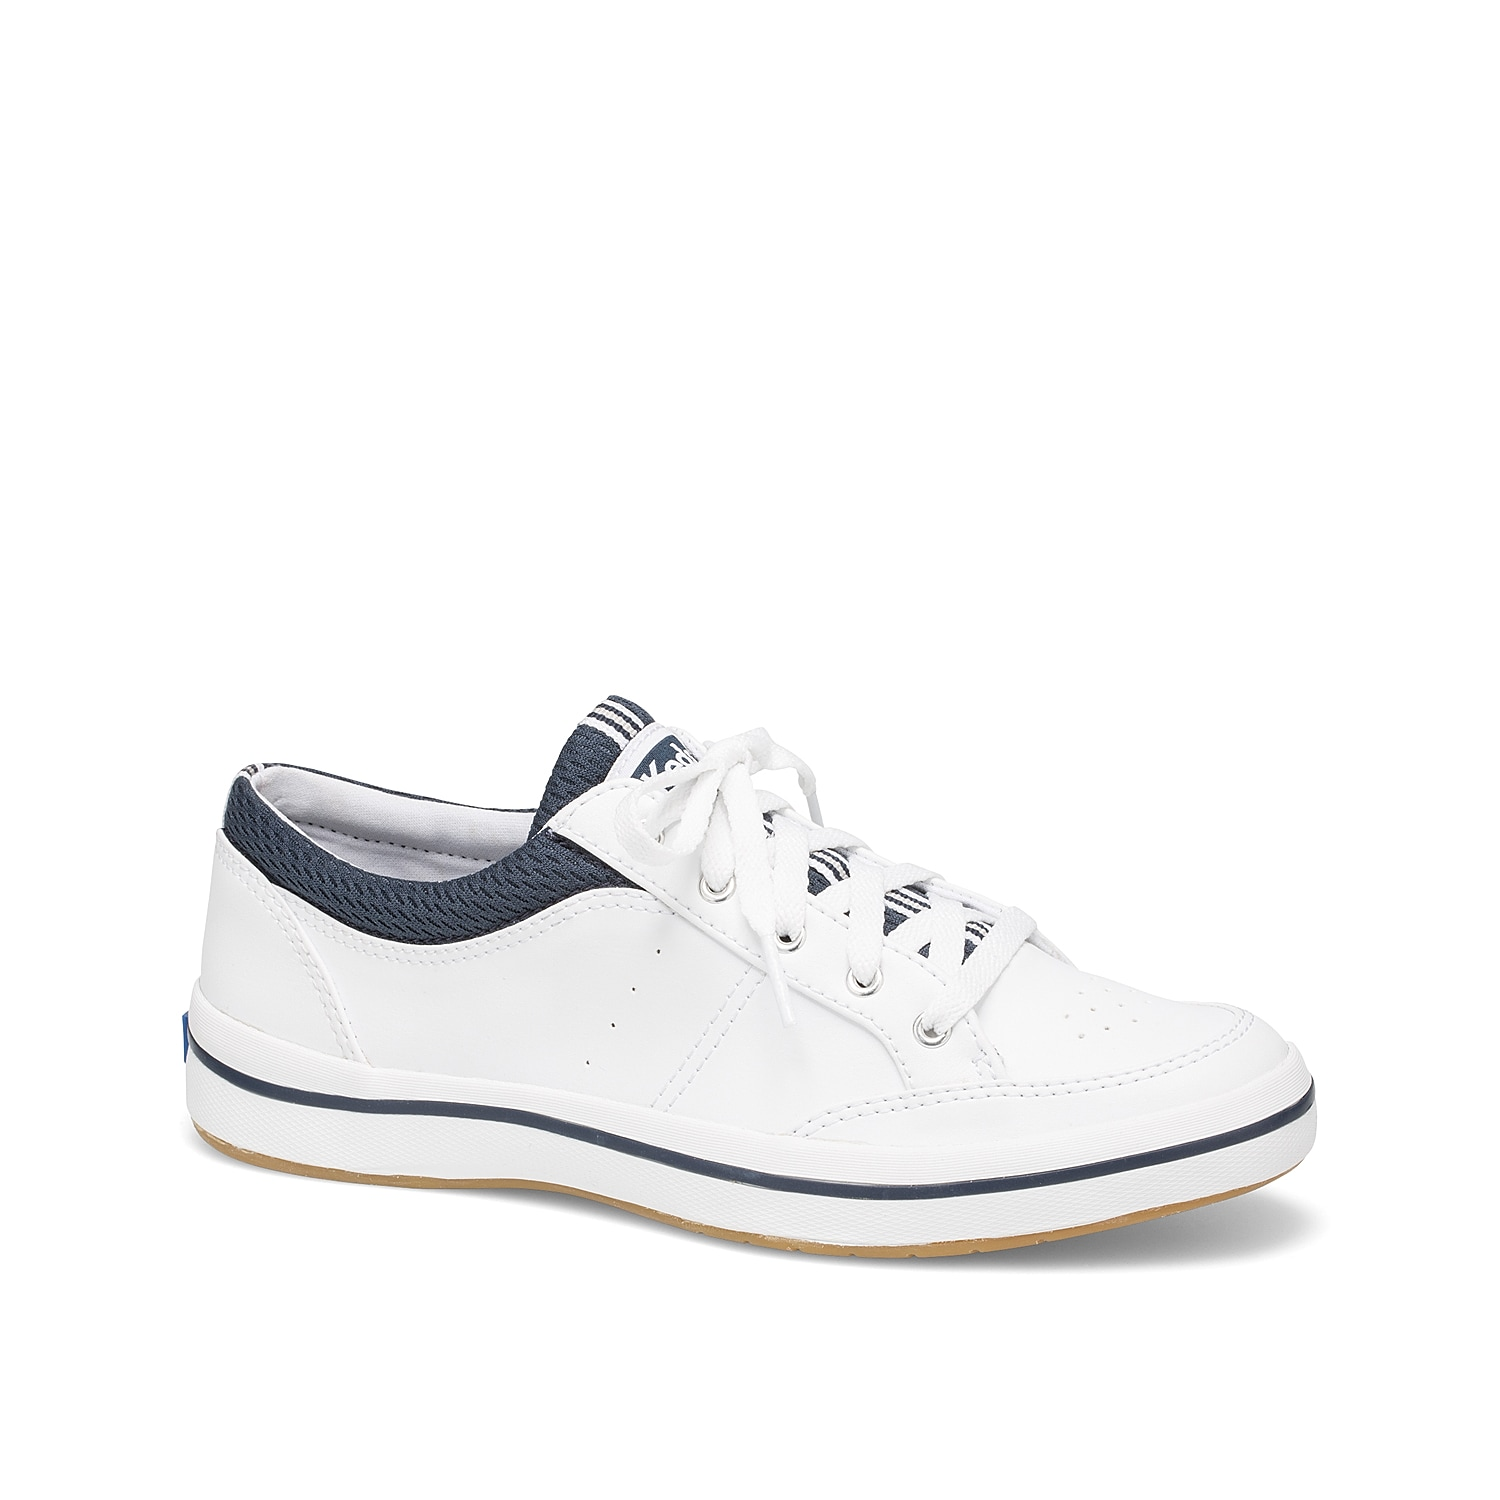 Make your casual style flair with the Rebel sneaker from Keds. This low-top sneak is fashioned with a clean, leather construction and a mesh topline that will go great with a cute baseball hat and short overalls!